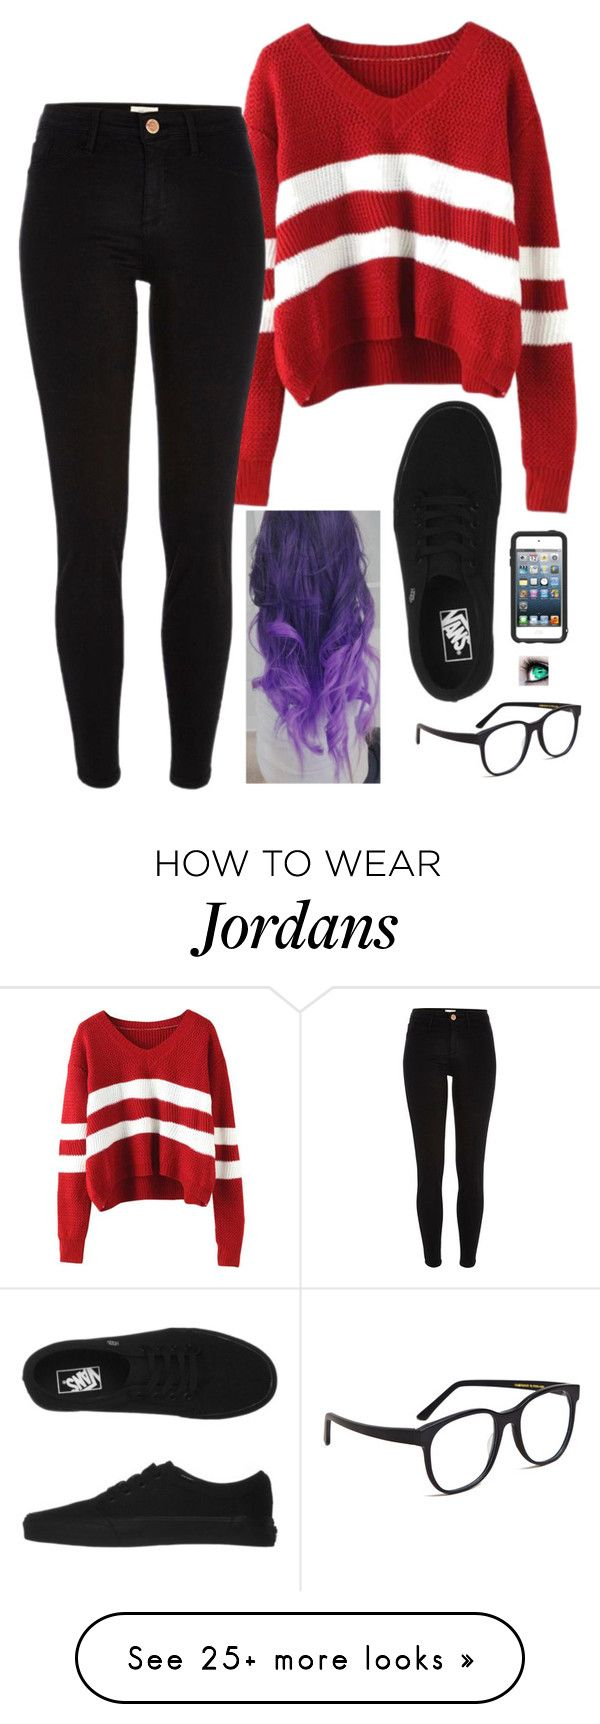 """Untitled #784"" by erika-demass on Polyvore featuring moda, River Island, Vans, OtterBox y Larke"